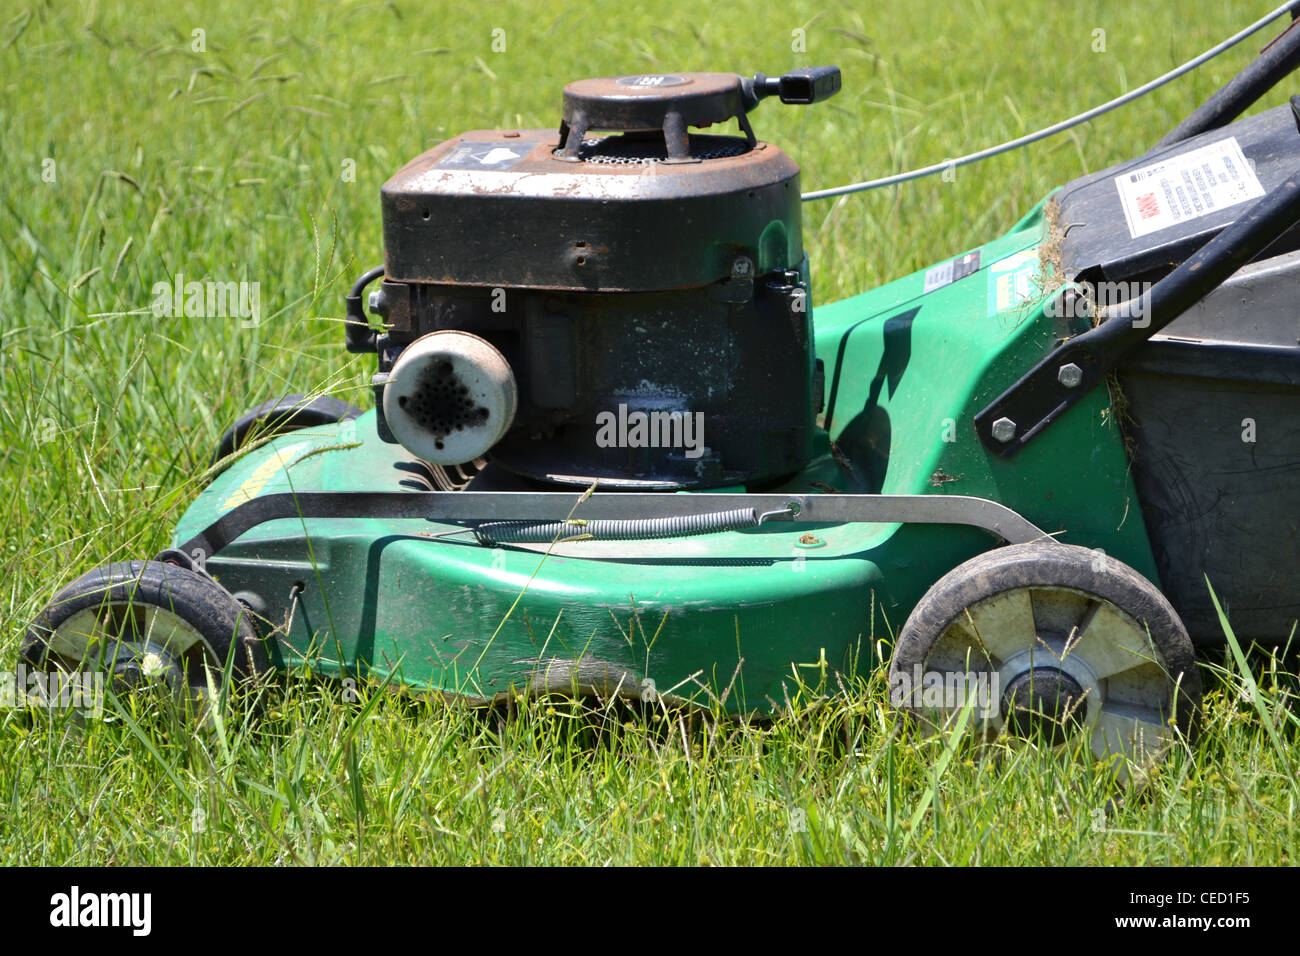 Lawn mower in long grass - Stock Image